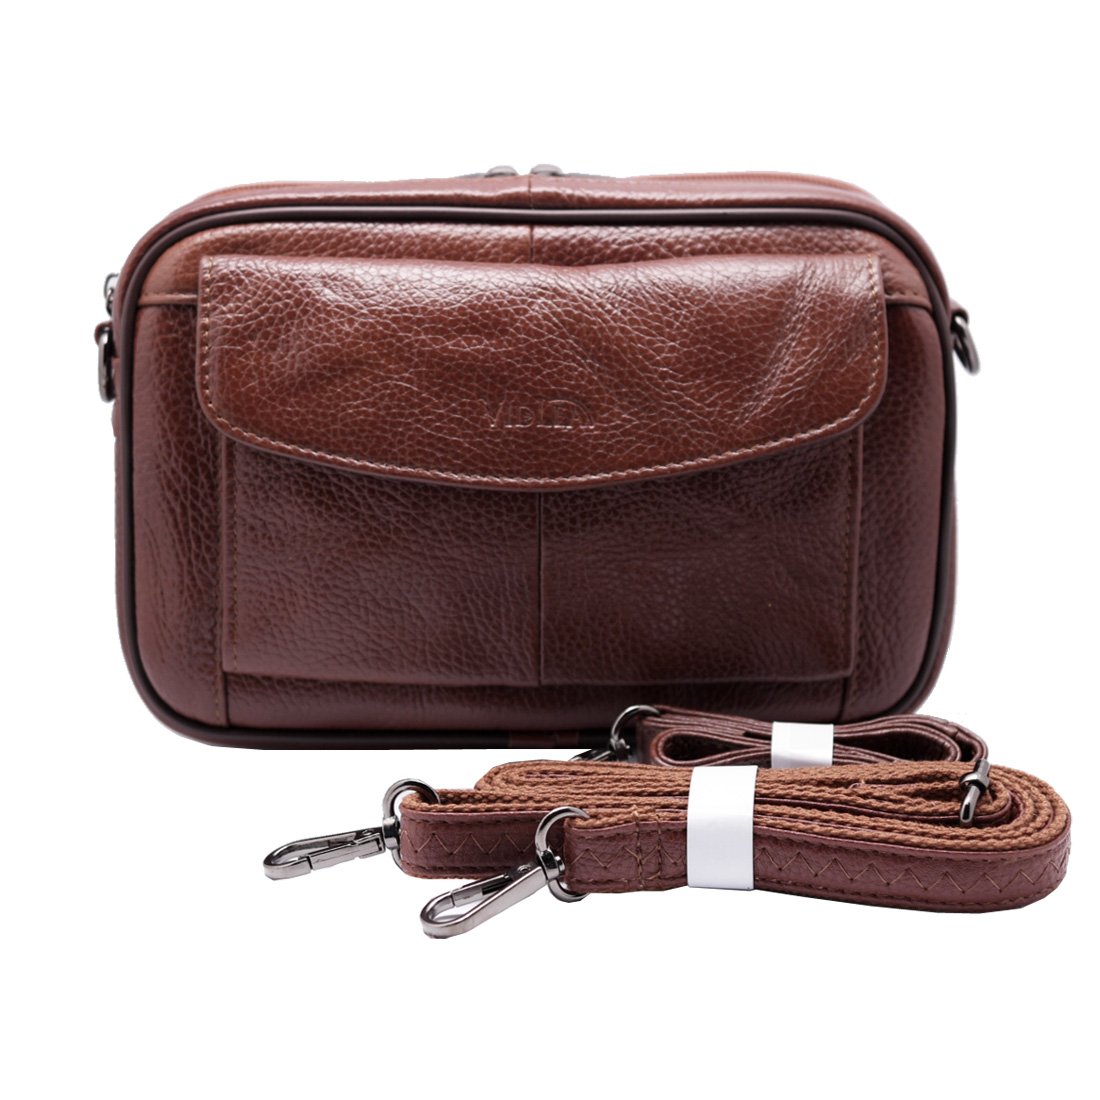 Mens messenger bag Tan Brown Cowhide leather Handbag - VIDLEA